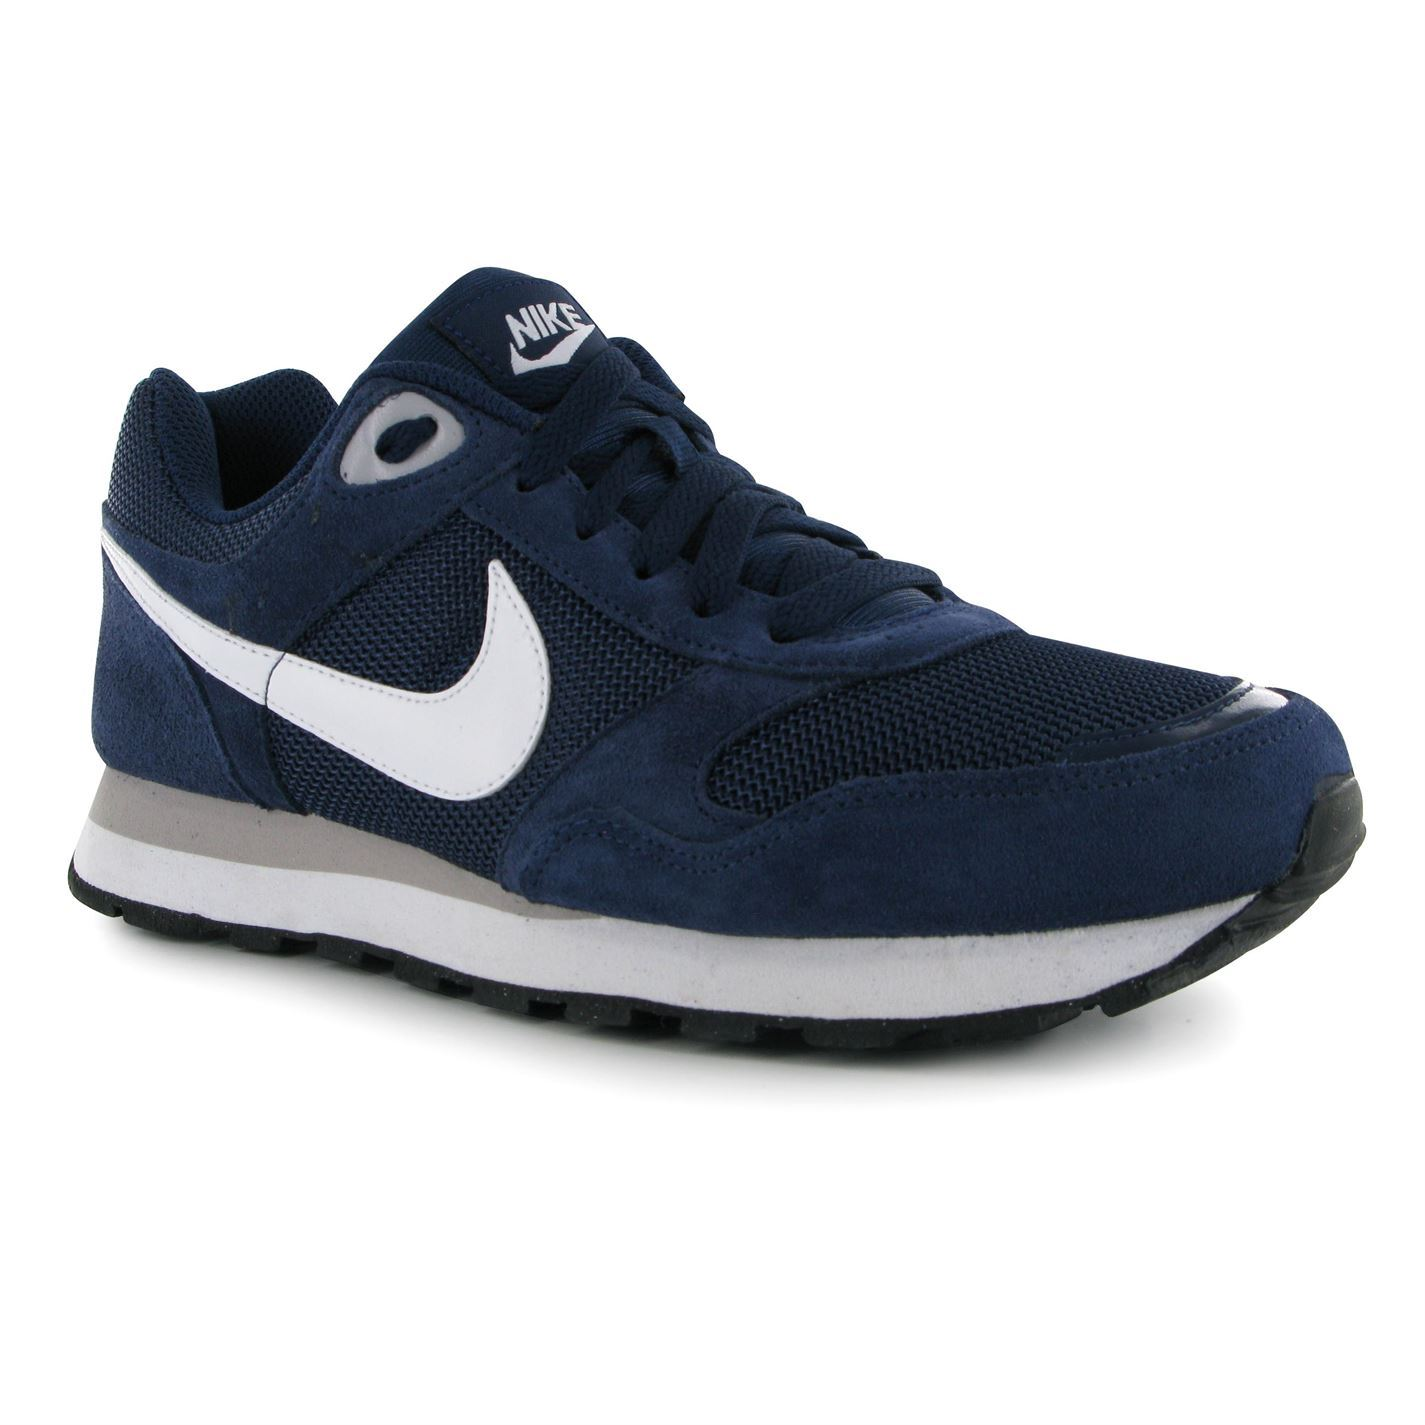 nike md runner textile shoes trainers mens navy white. Black Bedroom Furniture Sets. Home Design Ideas